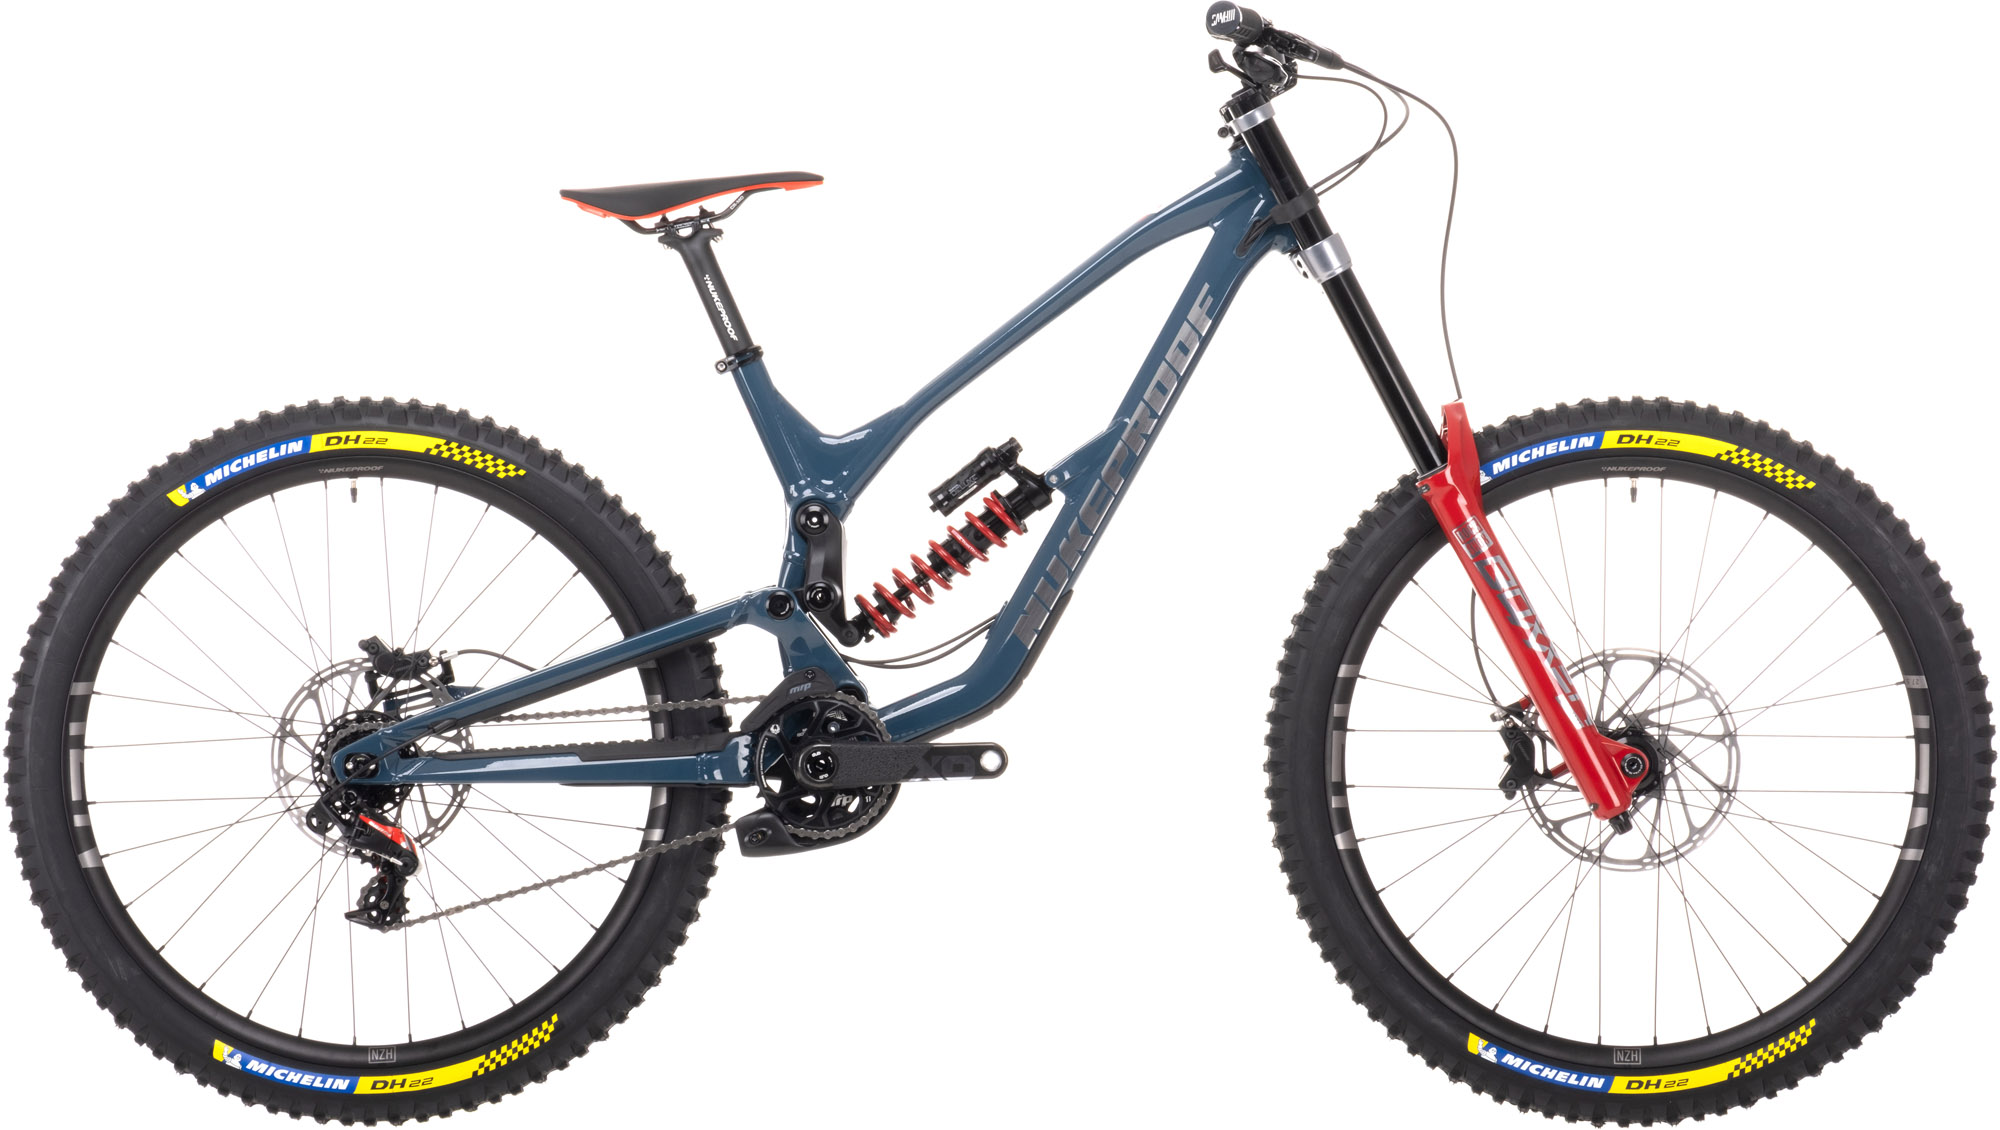 Nukeproof - Dissent 275 RS | mountainbike